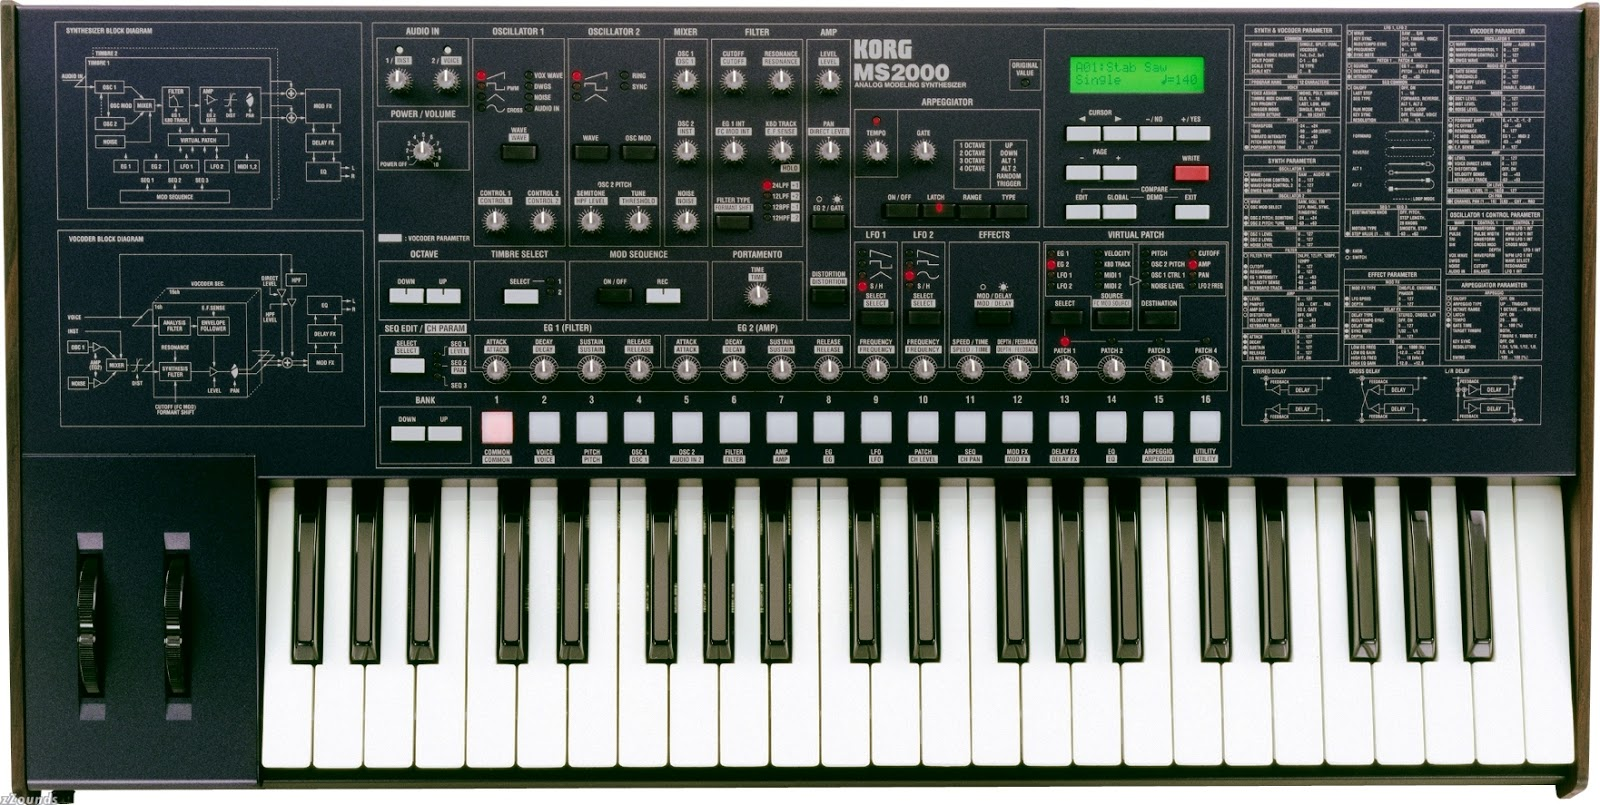 A Korg R3 That Exceeds In Sound Quality Embedded Systems Xfmr Diy Projects Didn39t You Used To Circuitbend On The Second Track I Loaded Some Ms2000 Patches Converted Format Notice Excellent With Rich Content